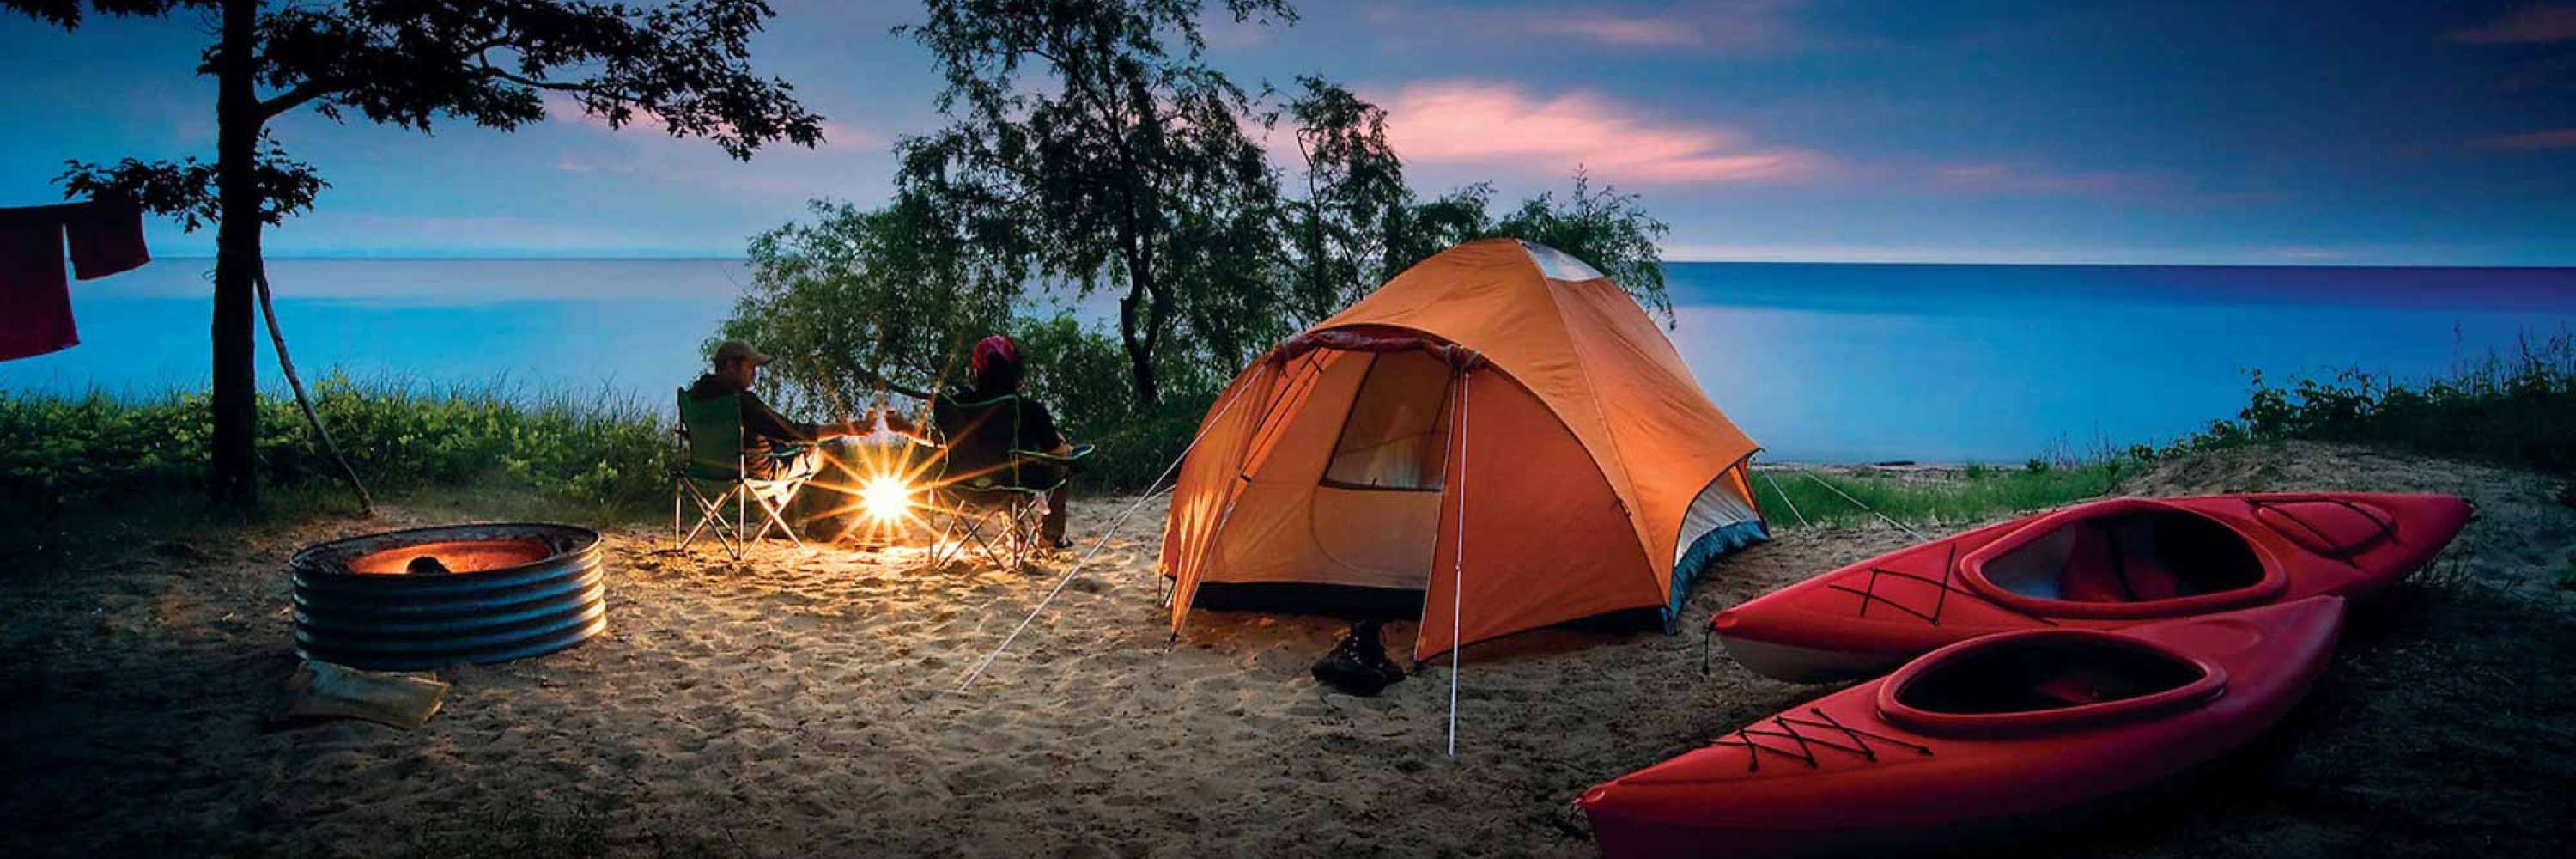 Camping: Campgrounds & RV Parks | Michigan